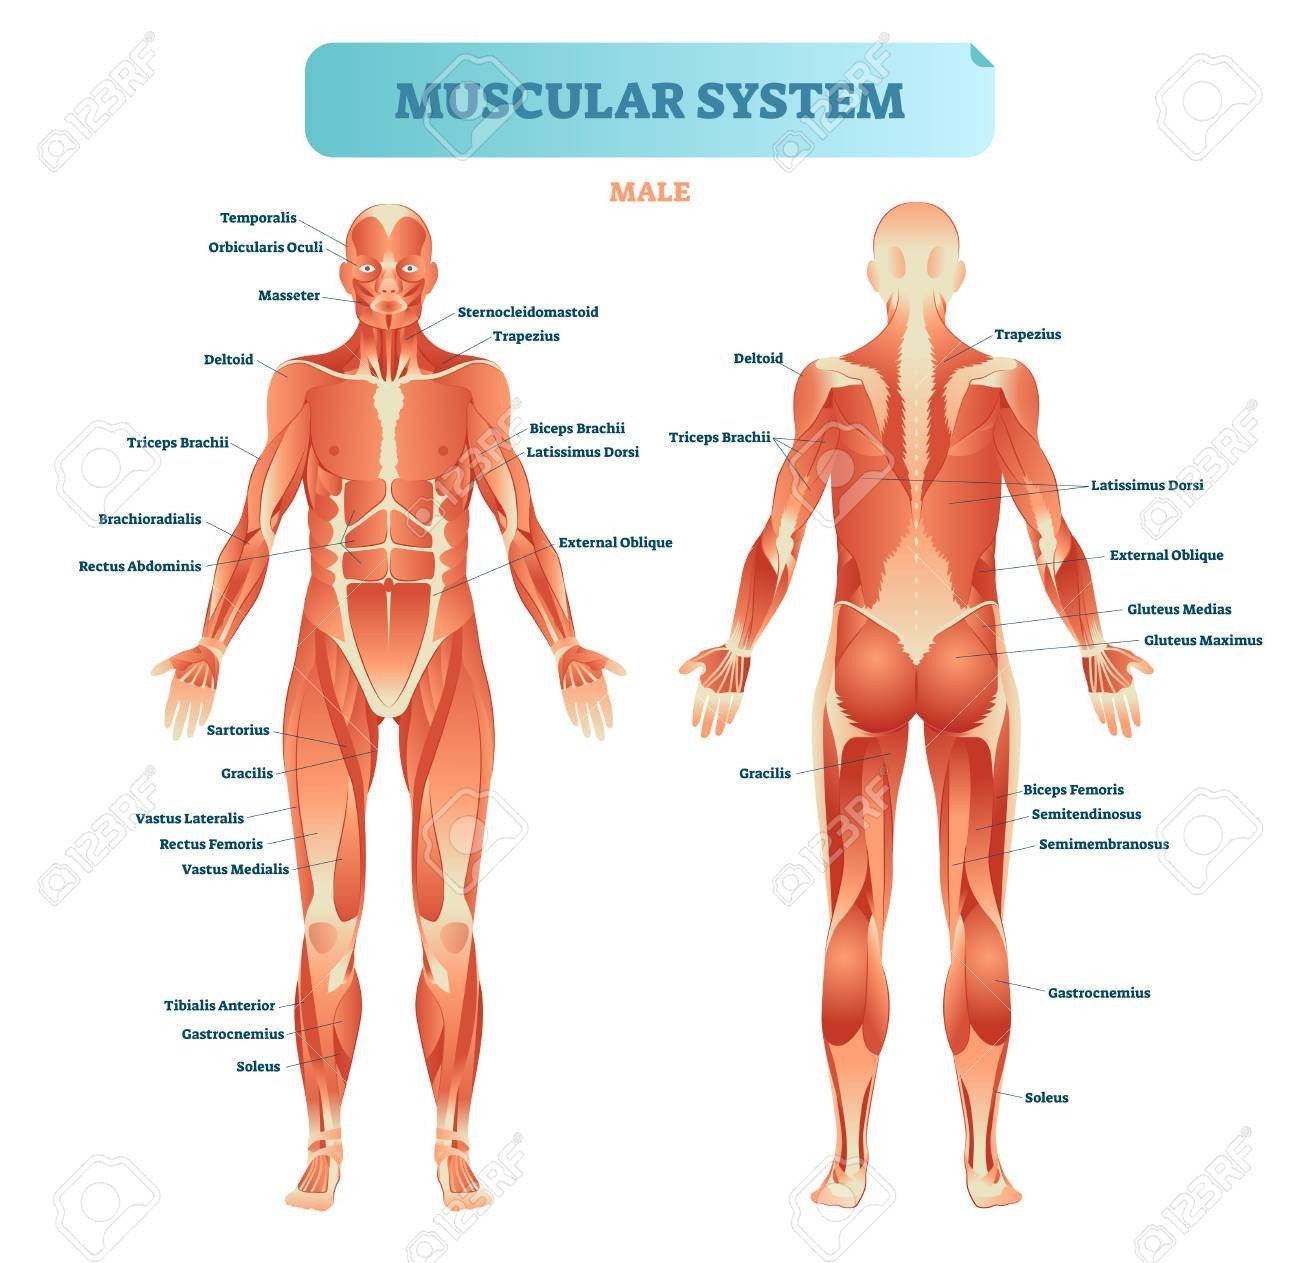 Blank Muscle Diagram Worksheet Co 9186] Diagram Muscles the Body Download Diagram